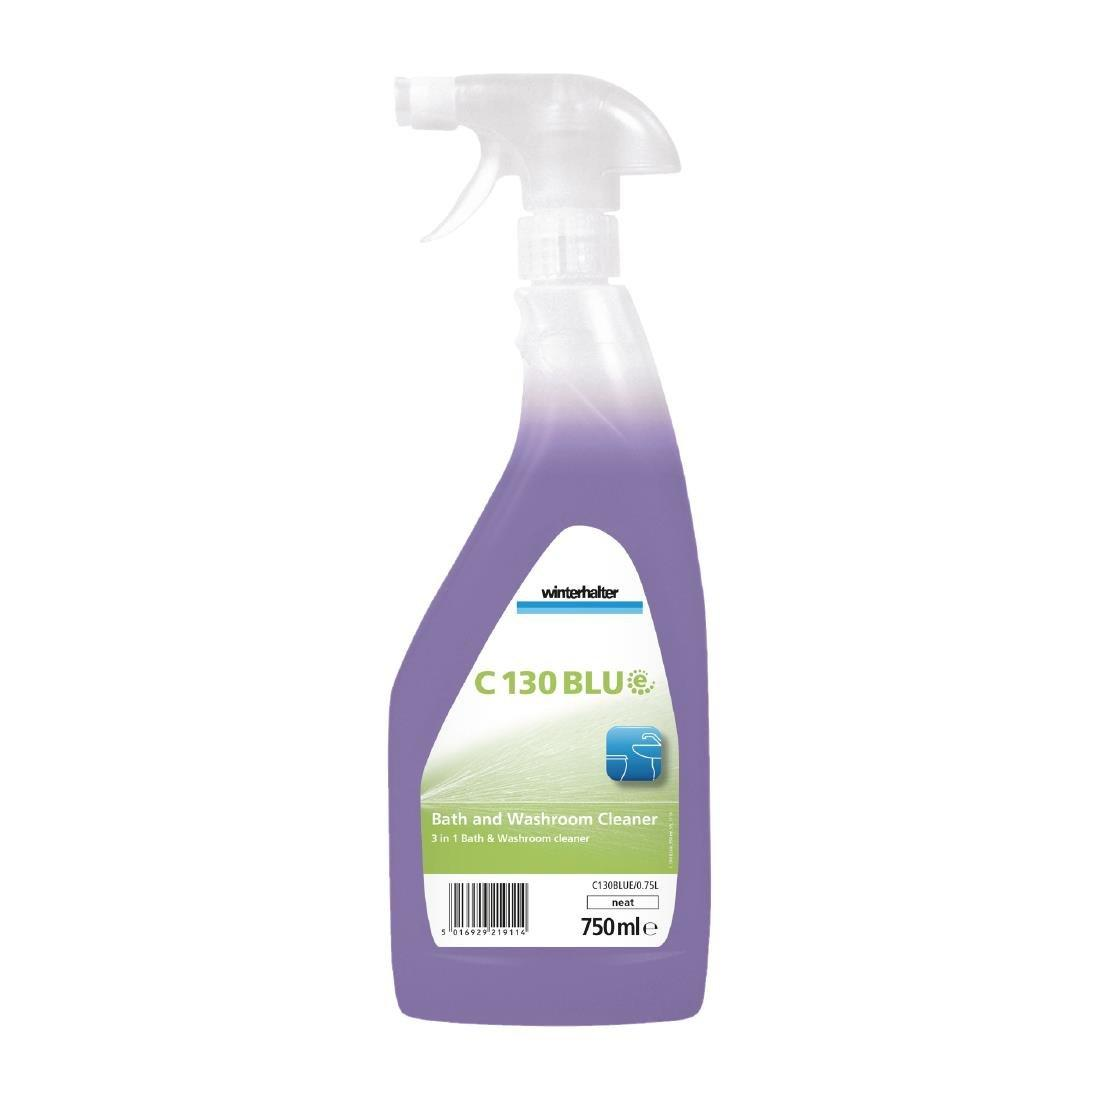 DR285 - Winterhalter C130 BLUe Bath and Washroom Cleaner Ready To Use 750ml - Pack of 6 - DR285